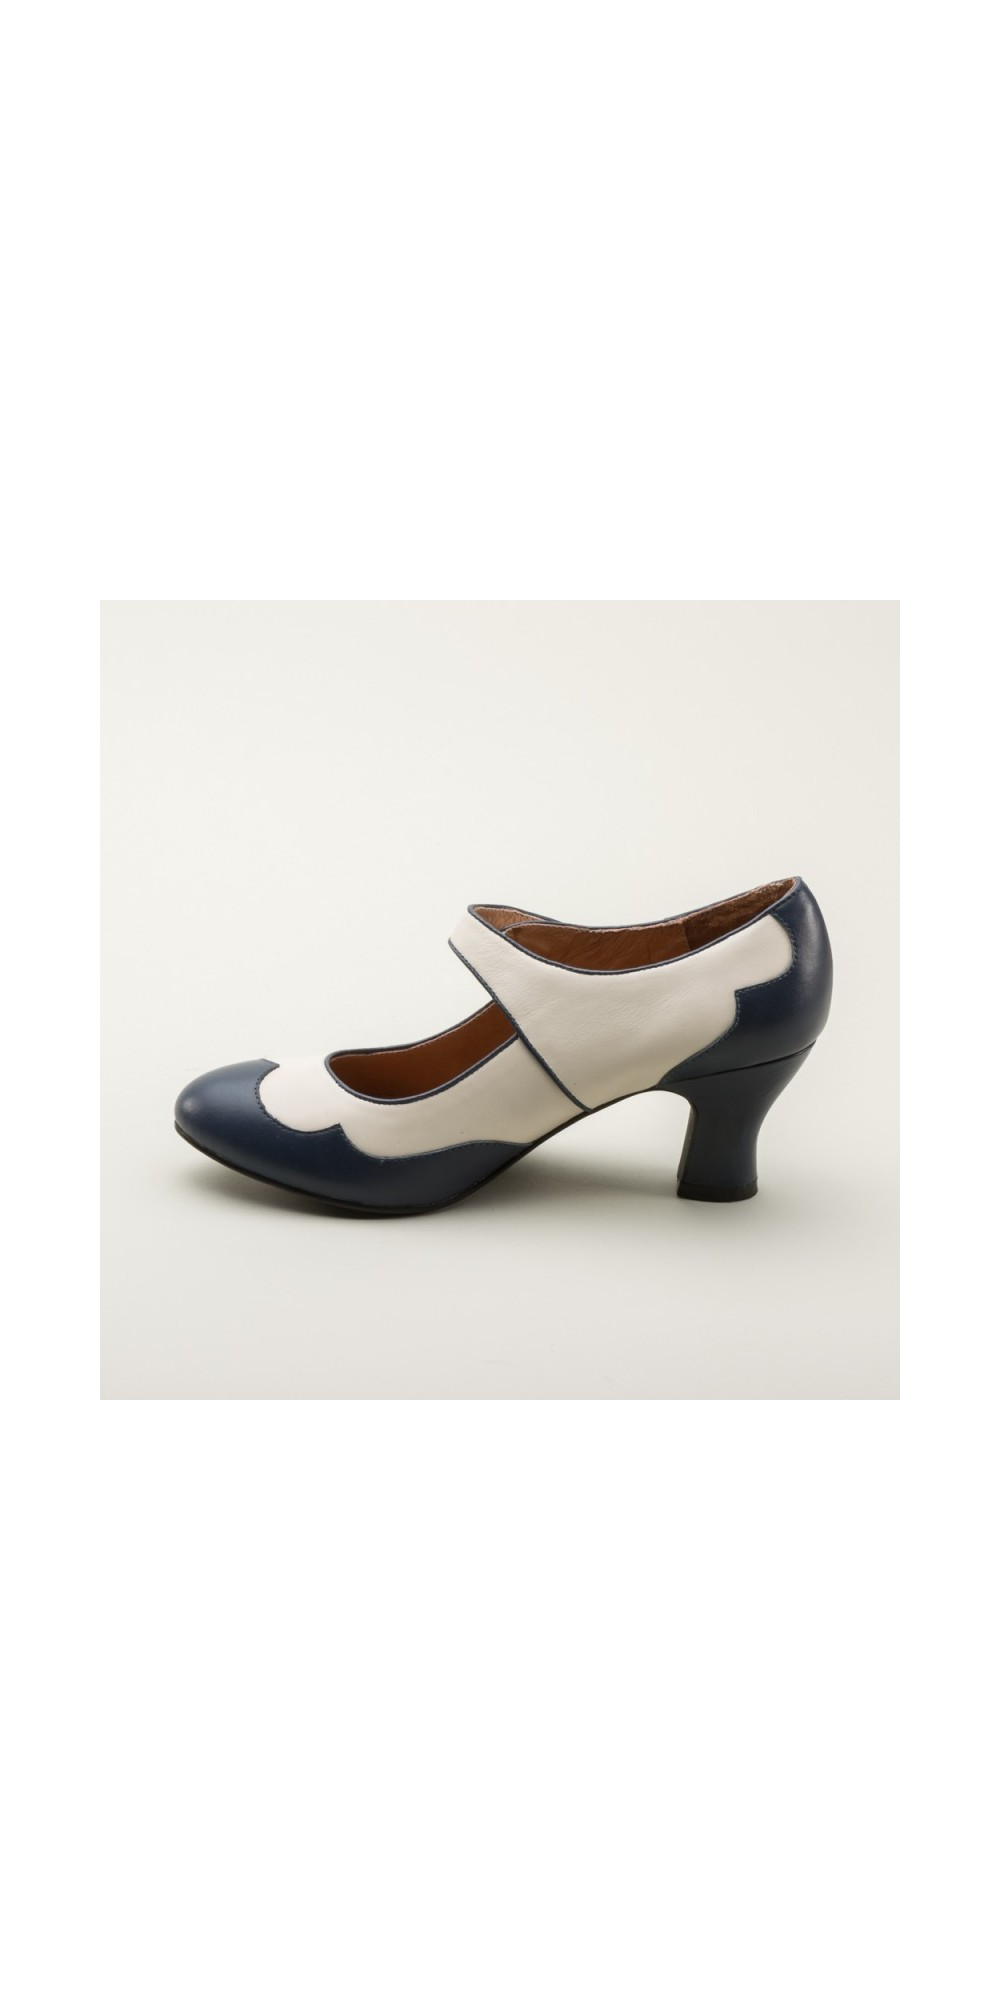 a8eaee83a9ab Lillian Retro Shoes in Navy Ivory by Royal Vintage Shoes